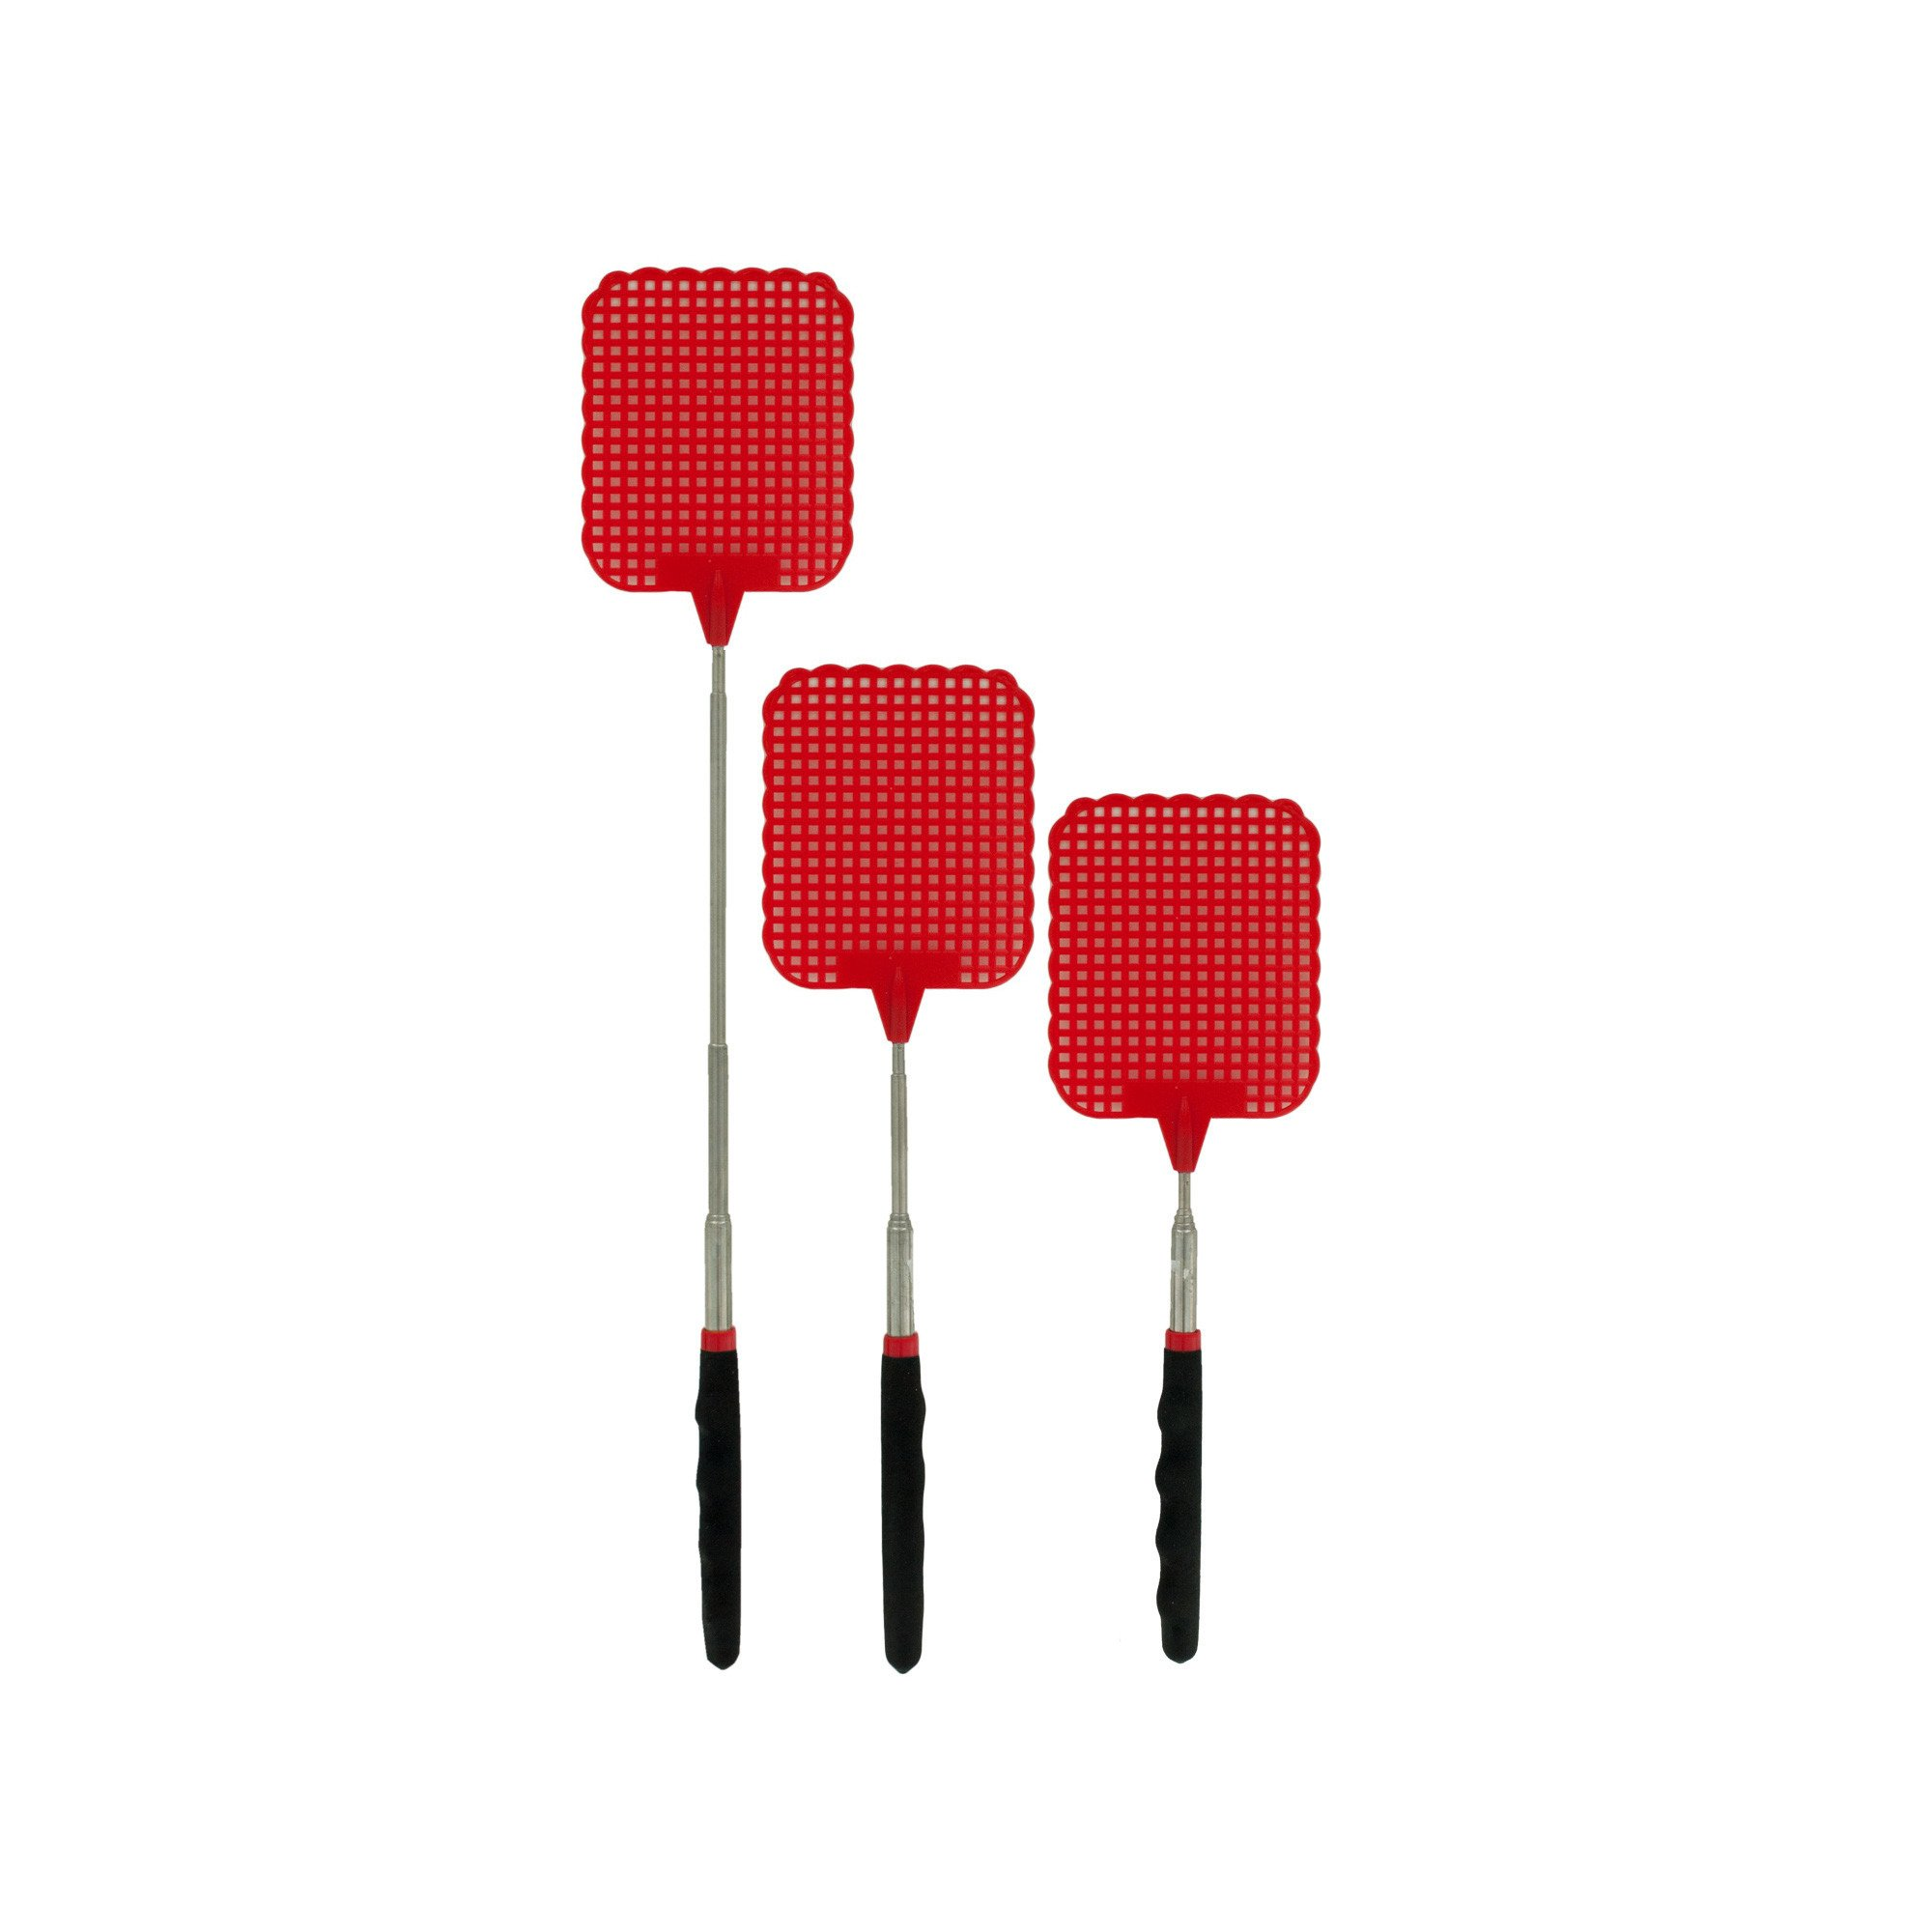 123-Wholesale - Set of 24 Telescopic Fly Swatter Countertop Display - Household Supplies Pest Control by 123-Wholesale (Image #1)